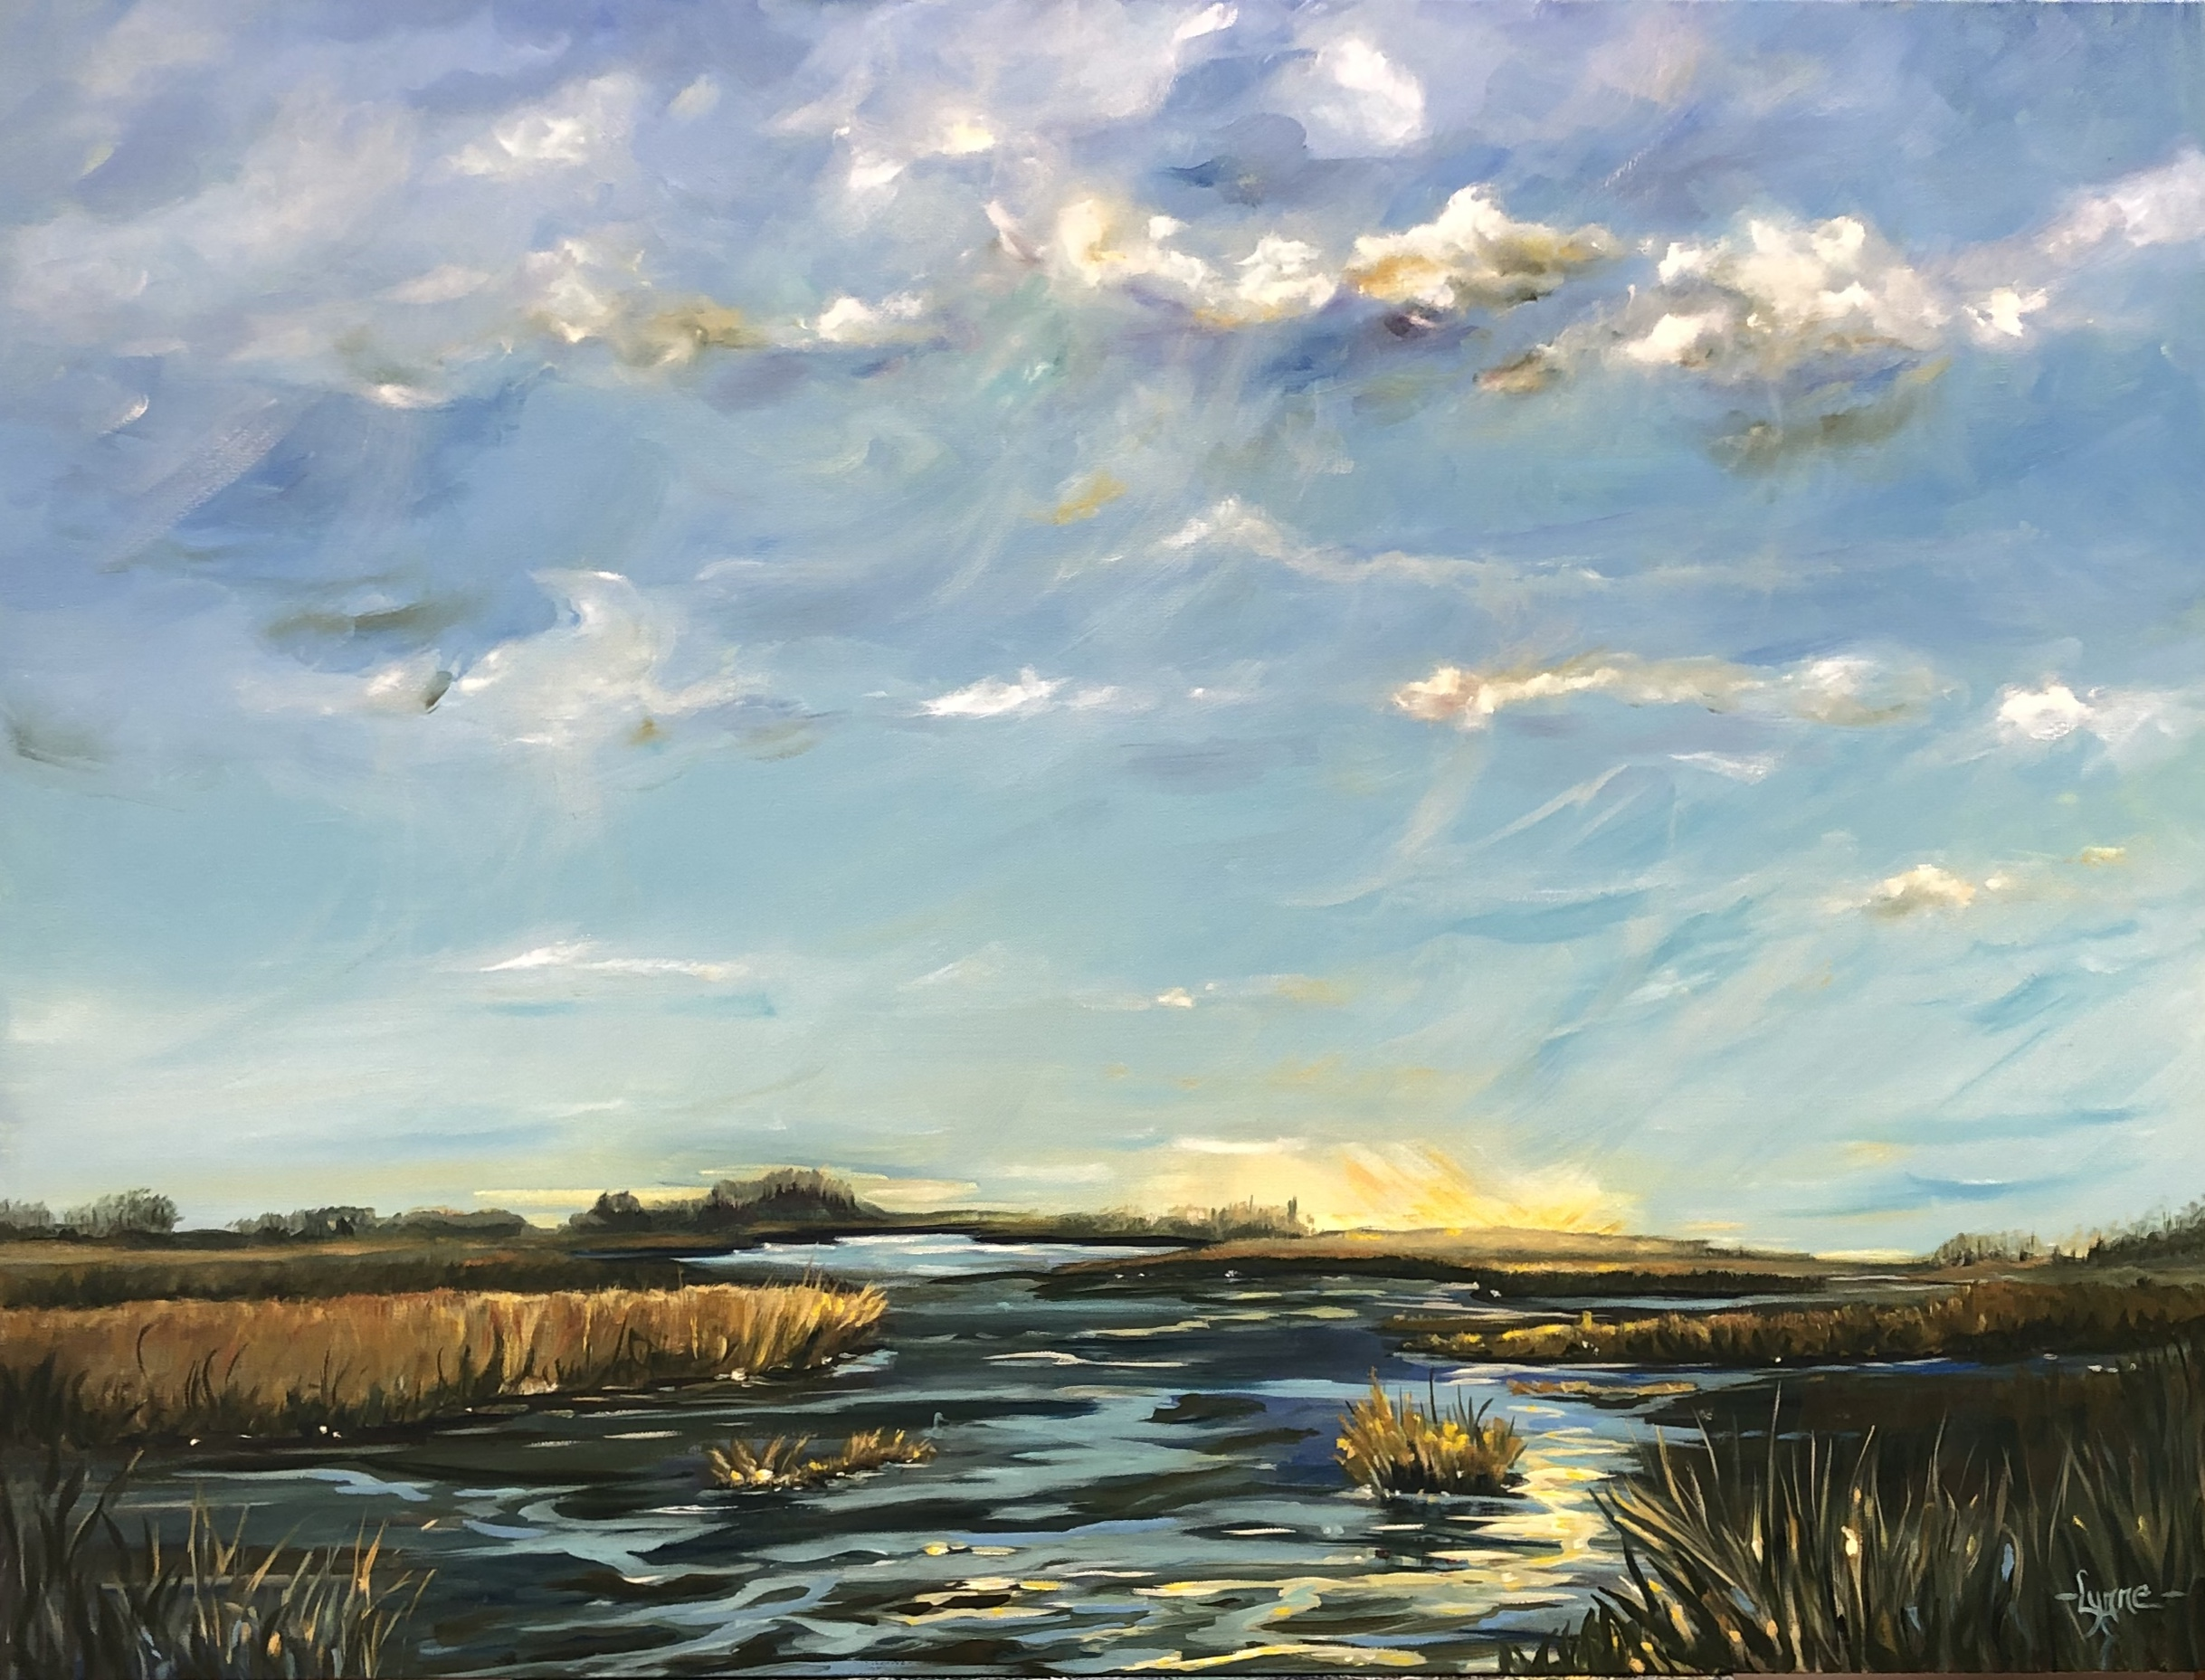 Painting of morning light hitting a lake by Lynne Rempel.